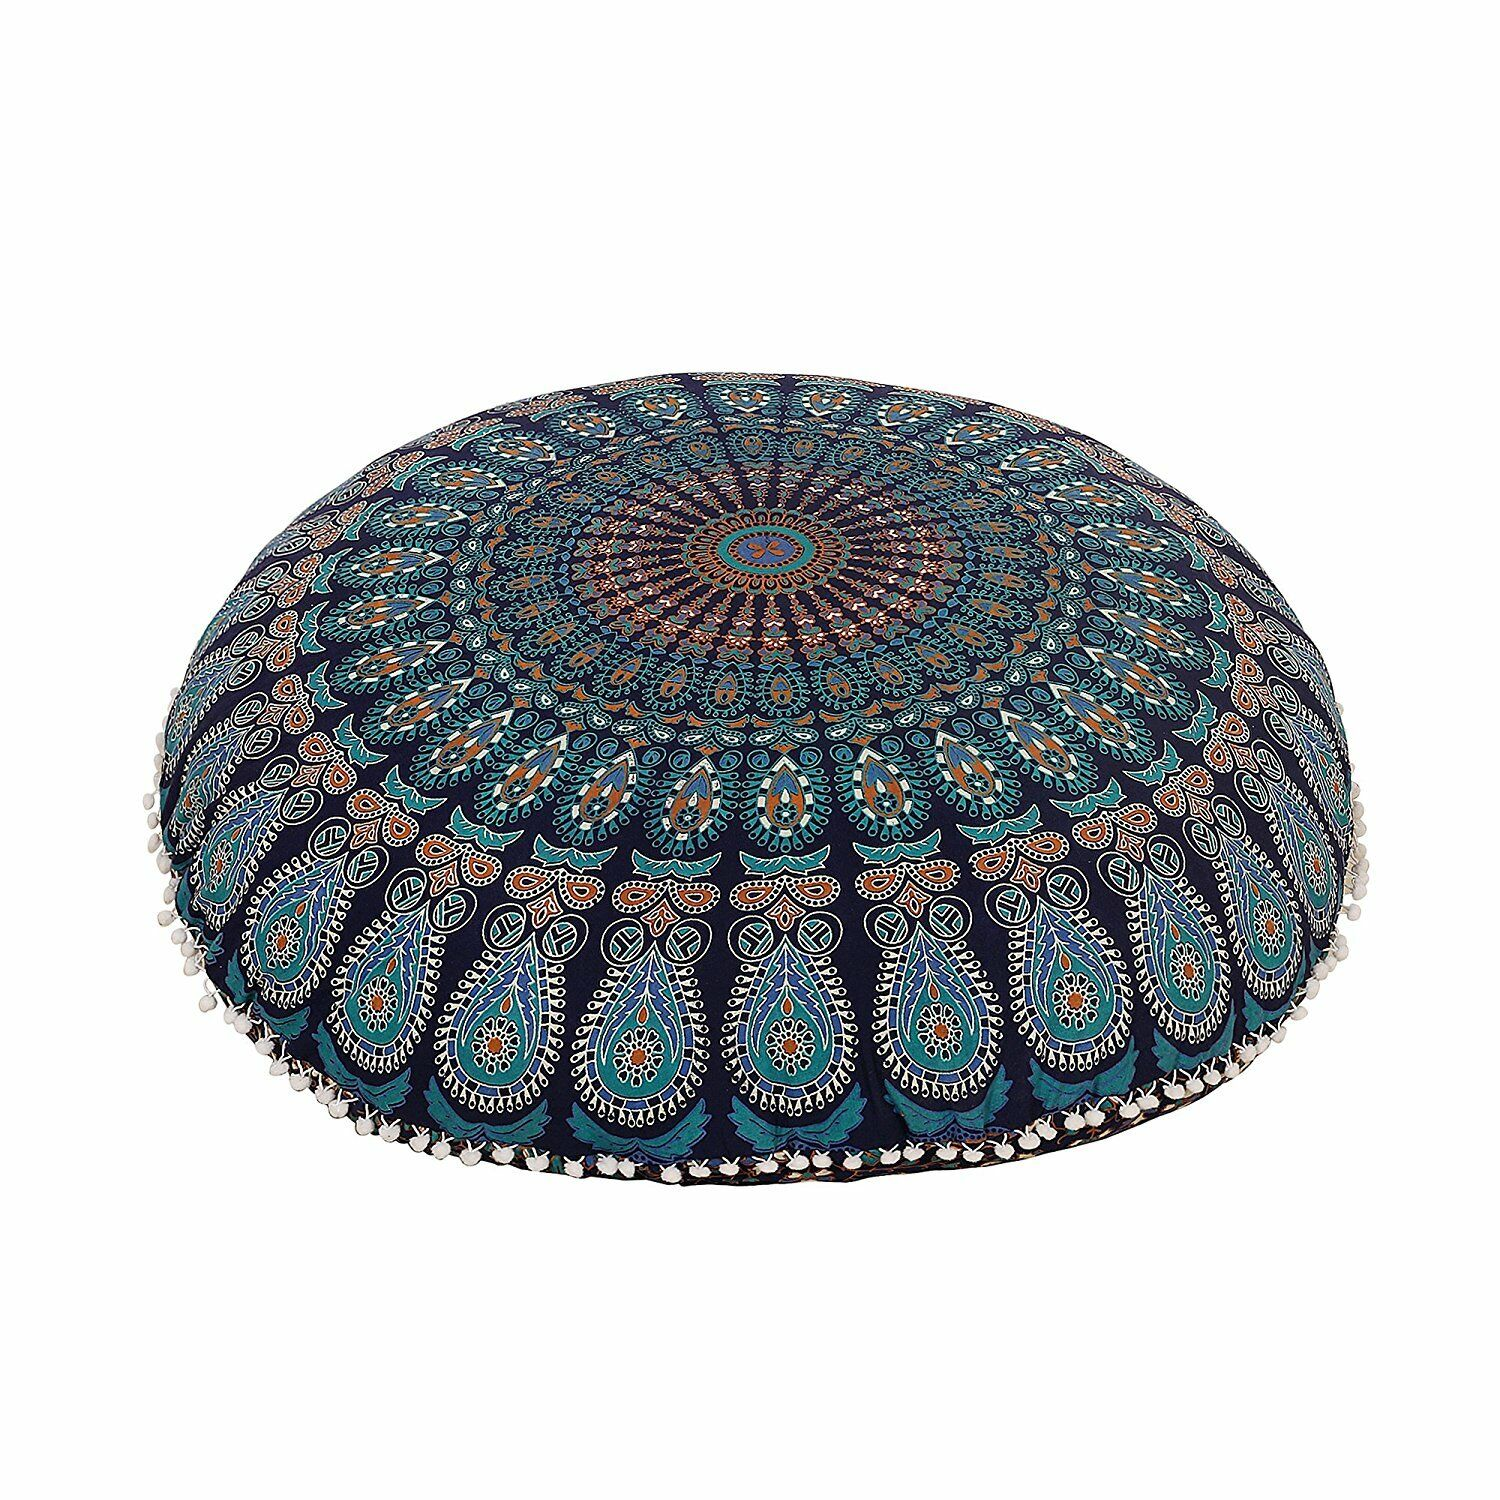 "Large 32"" Floor Cushion Mandala cover Throw Bohemian Indian"